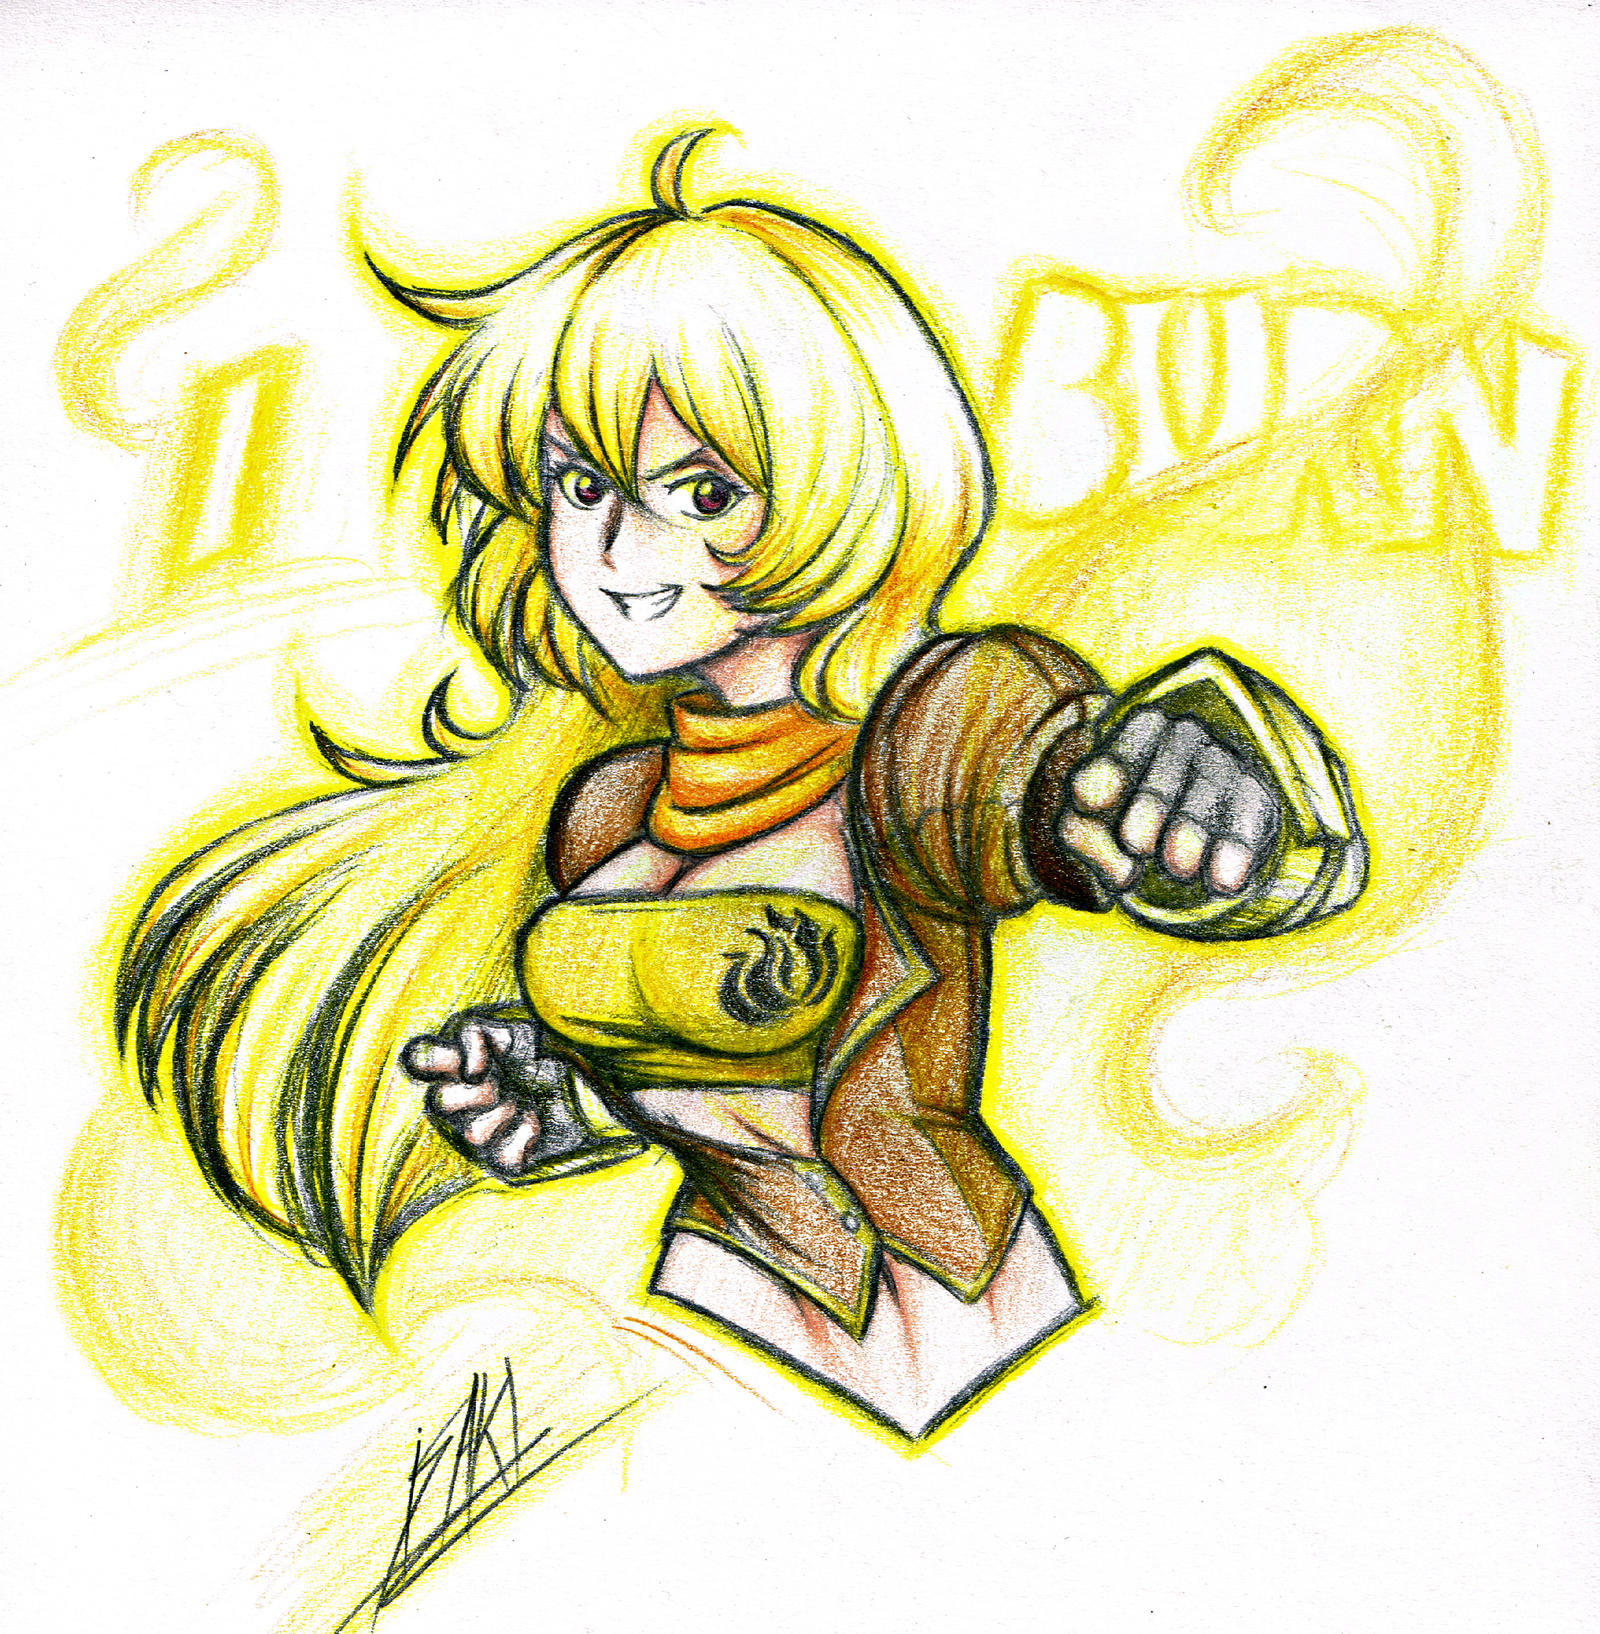 Yang Xiao Long Wallpaper: Yang Xiao Long By Men-dont-scream On DeviantArt